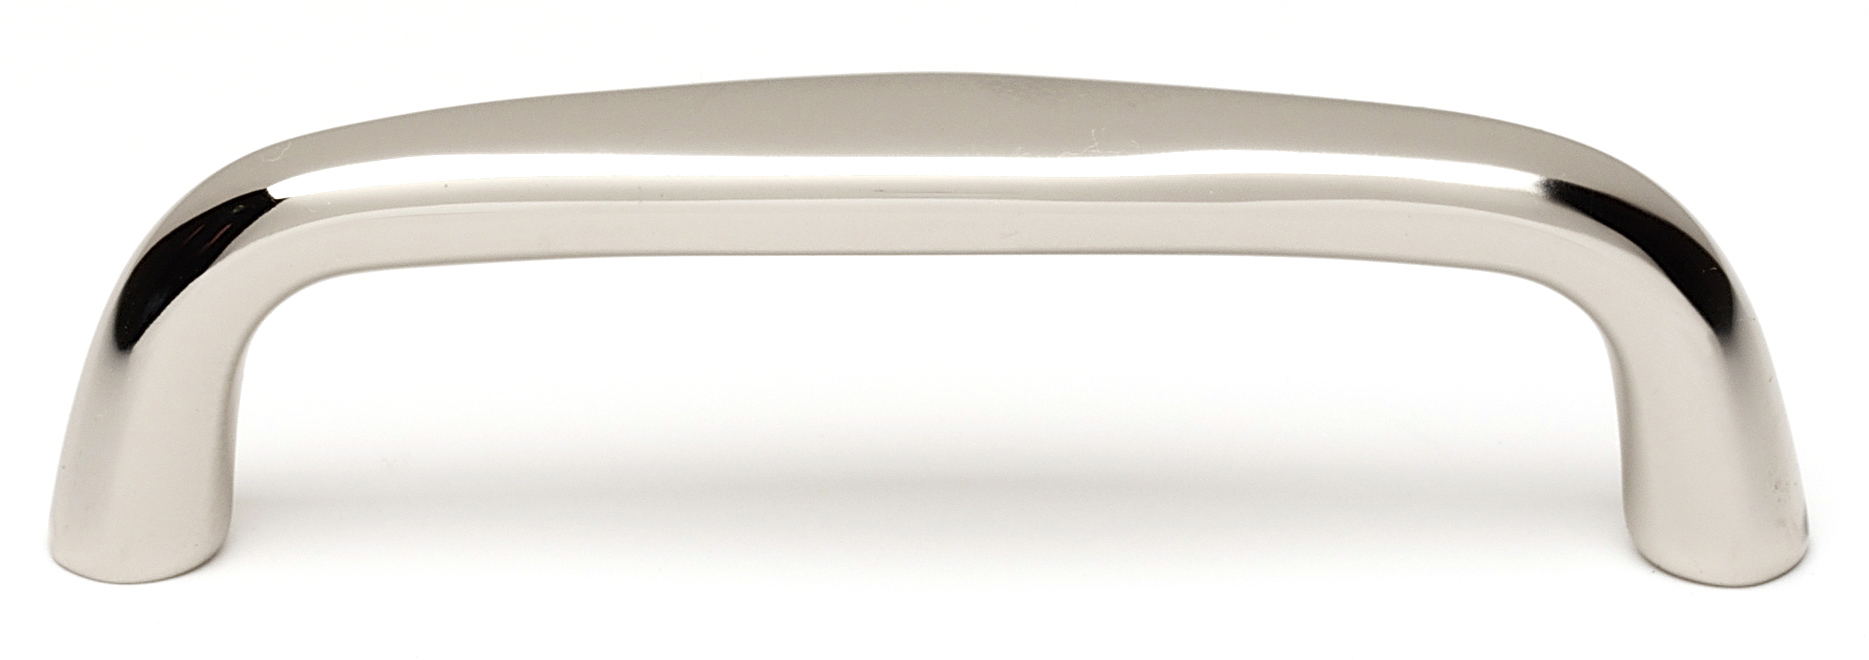 "Alno A1236-PN 3"" Pull - Polished Nickel"